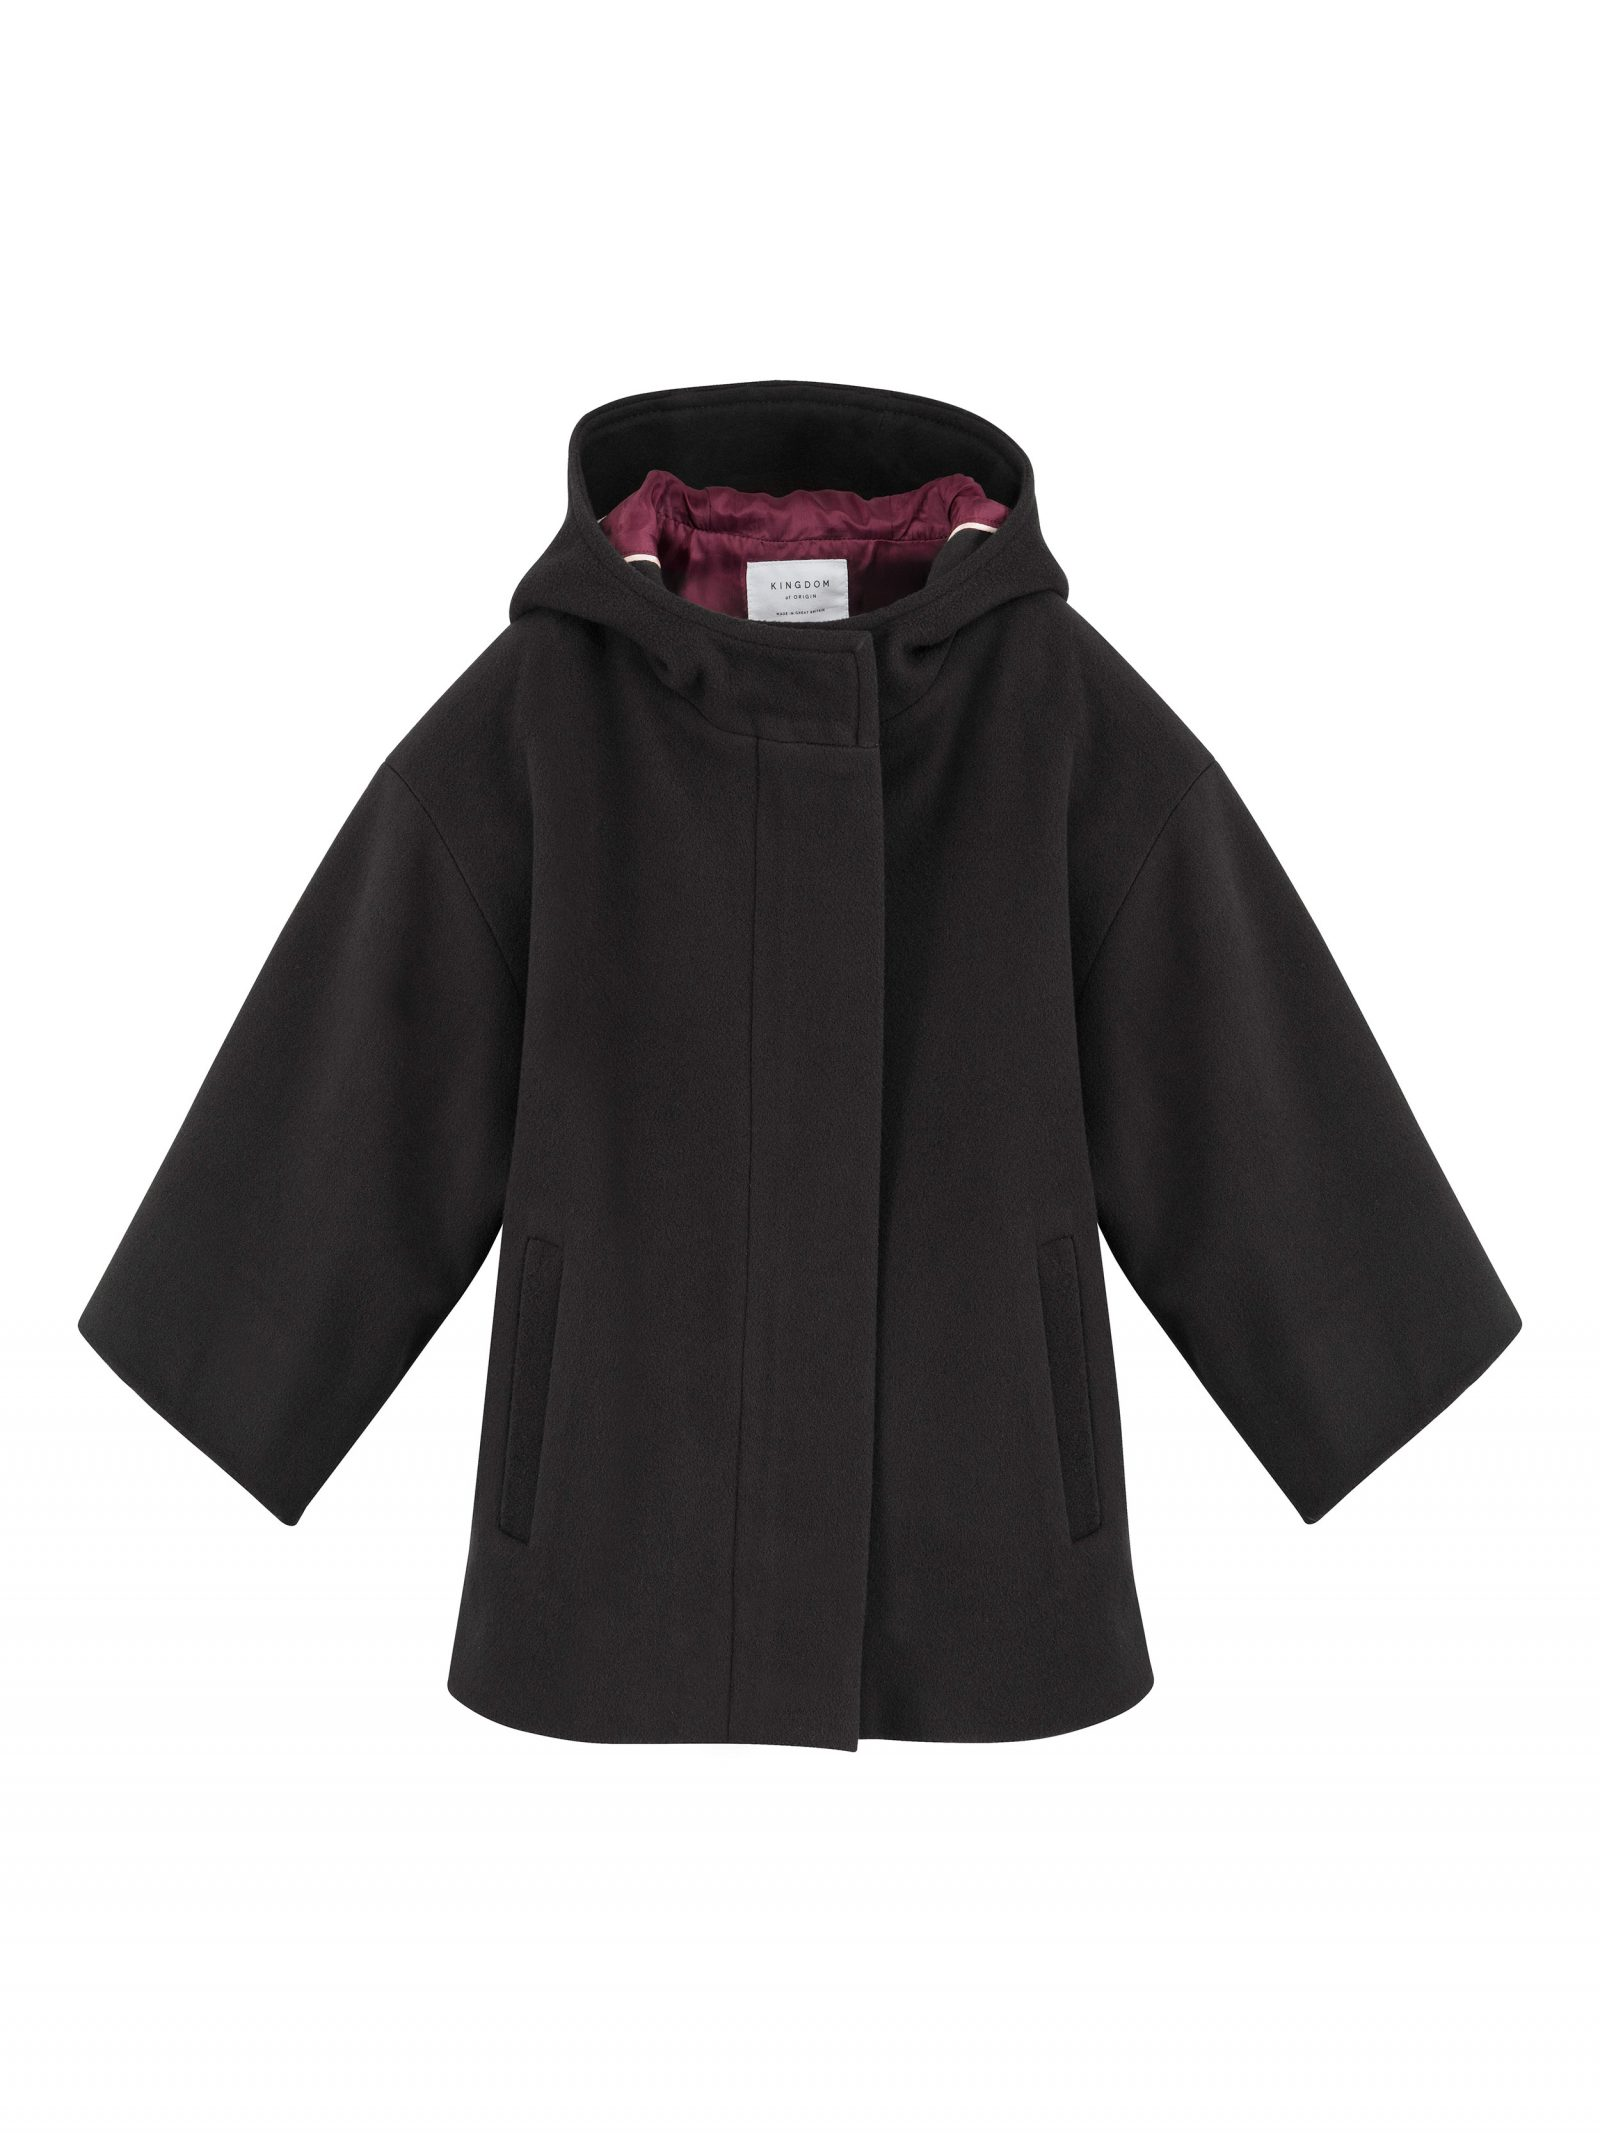 Keira Box Coat in Charcoal - Front